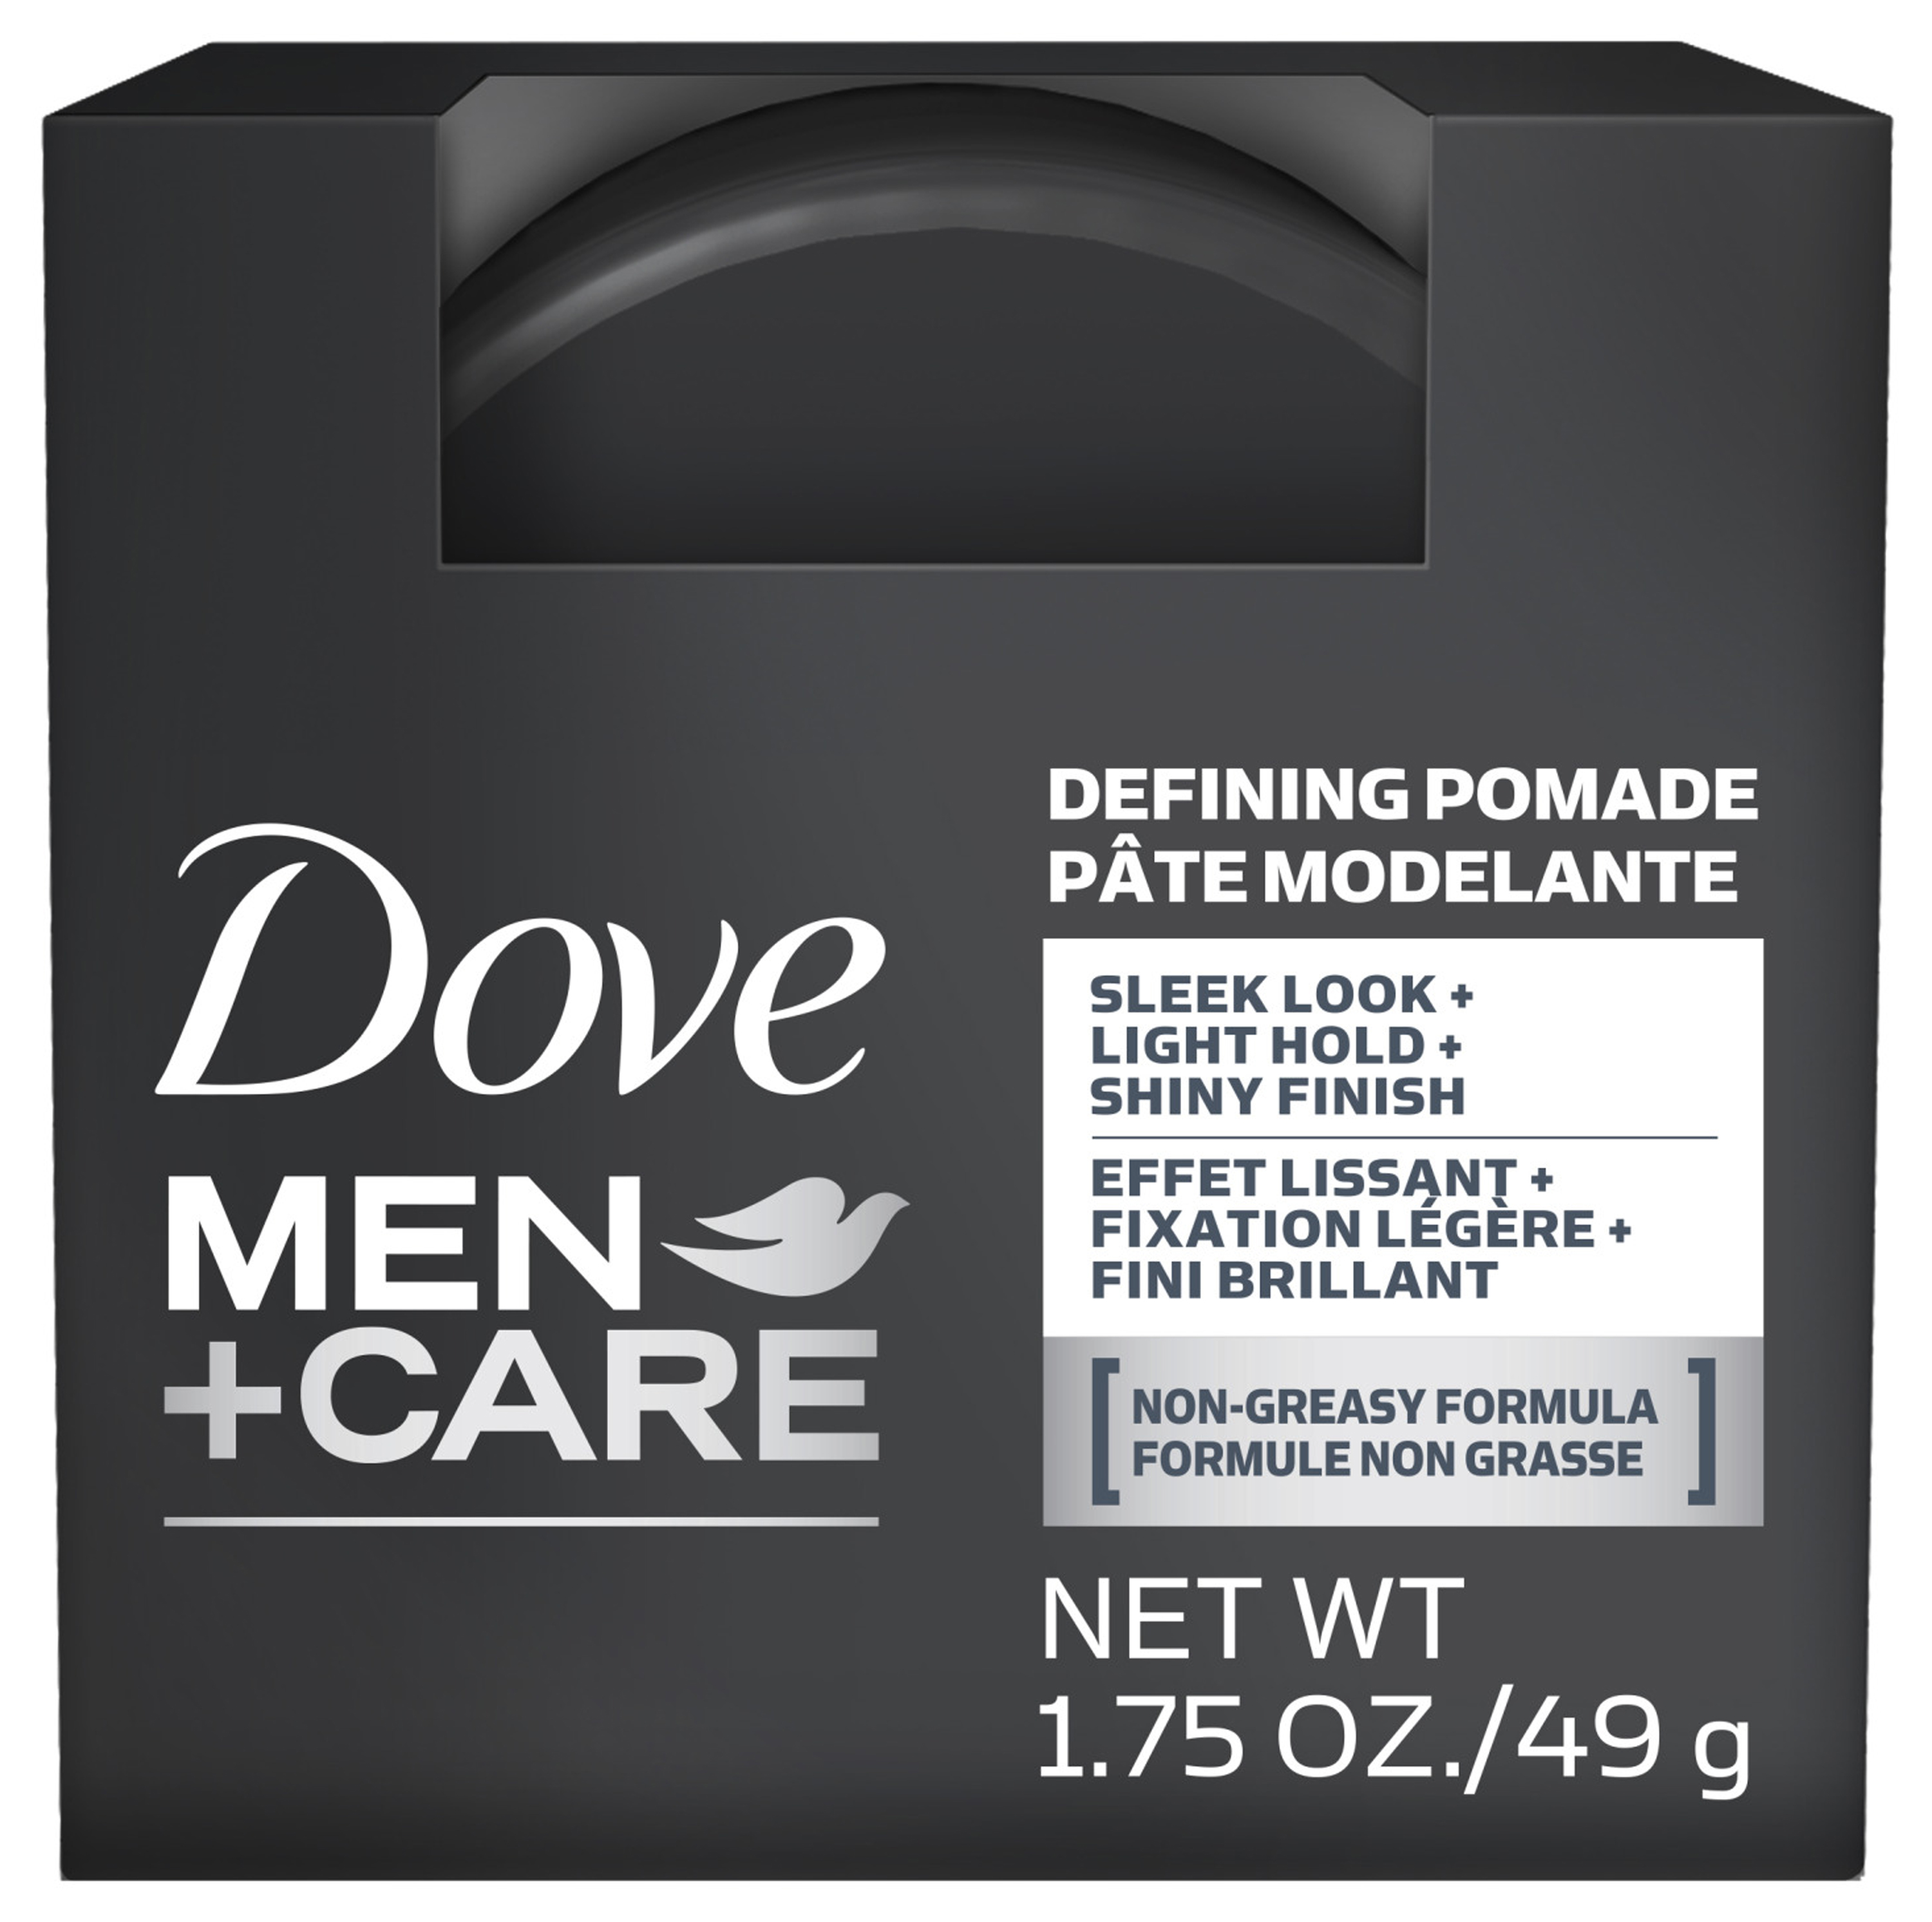 Dove Men+Care Defining Pomade Sleek Hold 1.75 oz